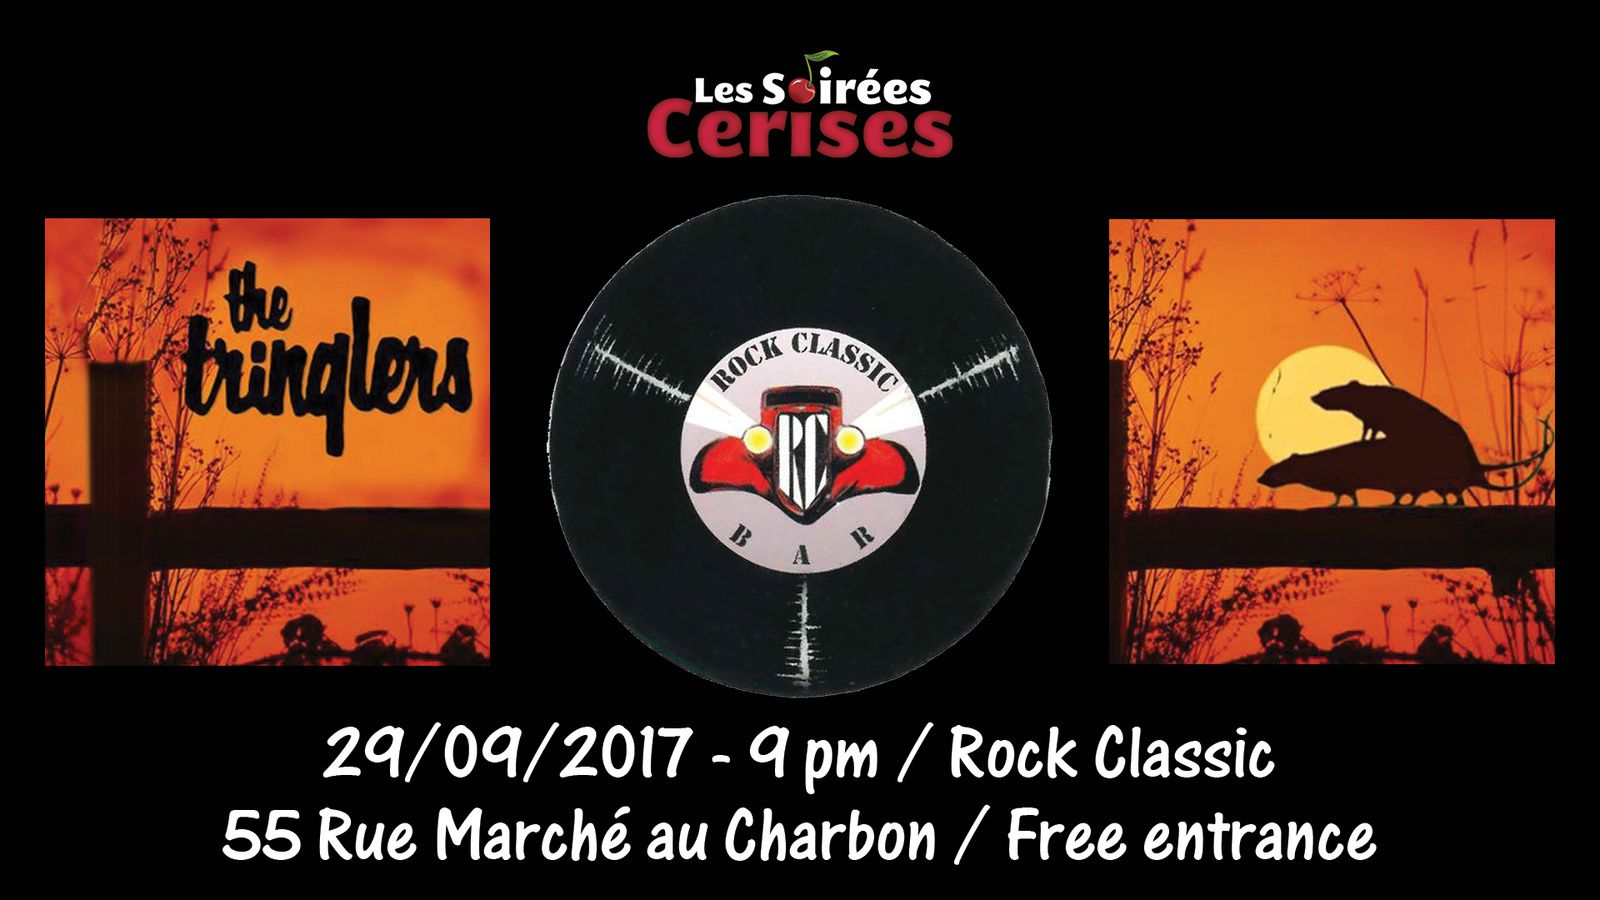 ▶ Photos / Videos - The Tringlers @ Rock Classic - 29/09/2017